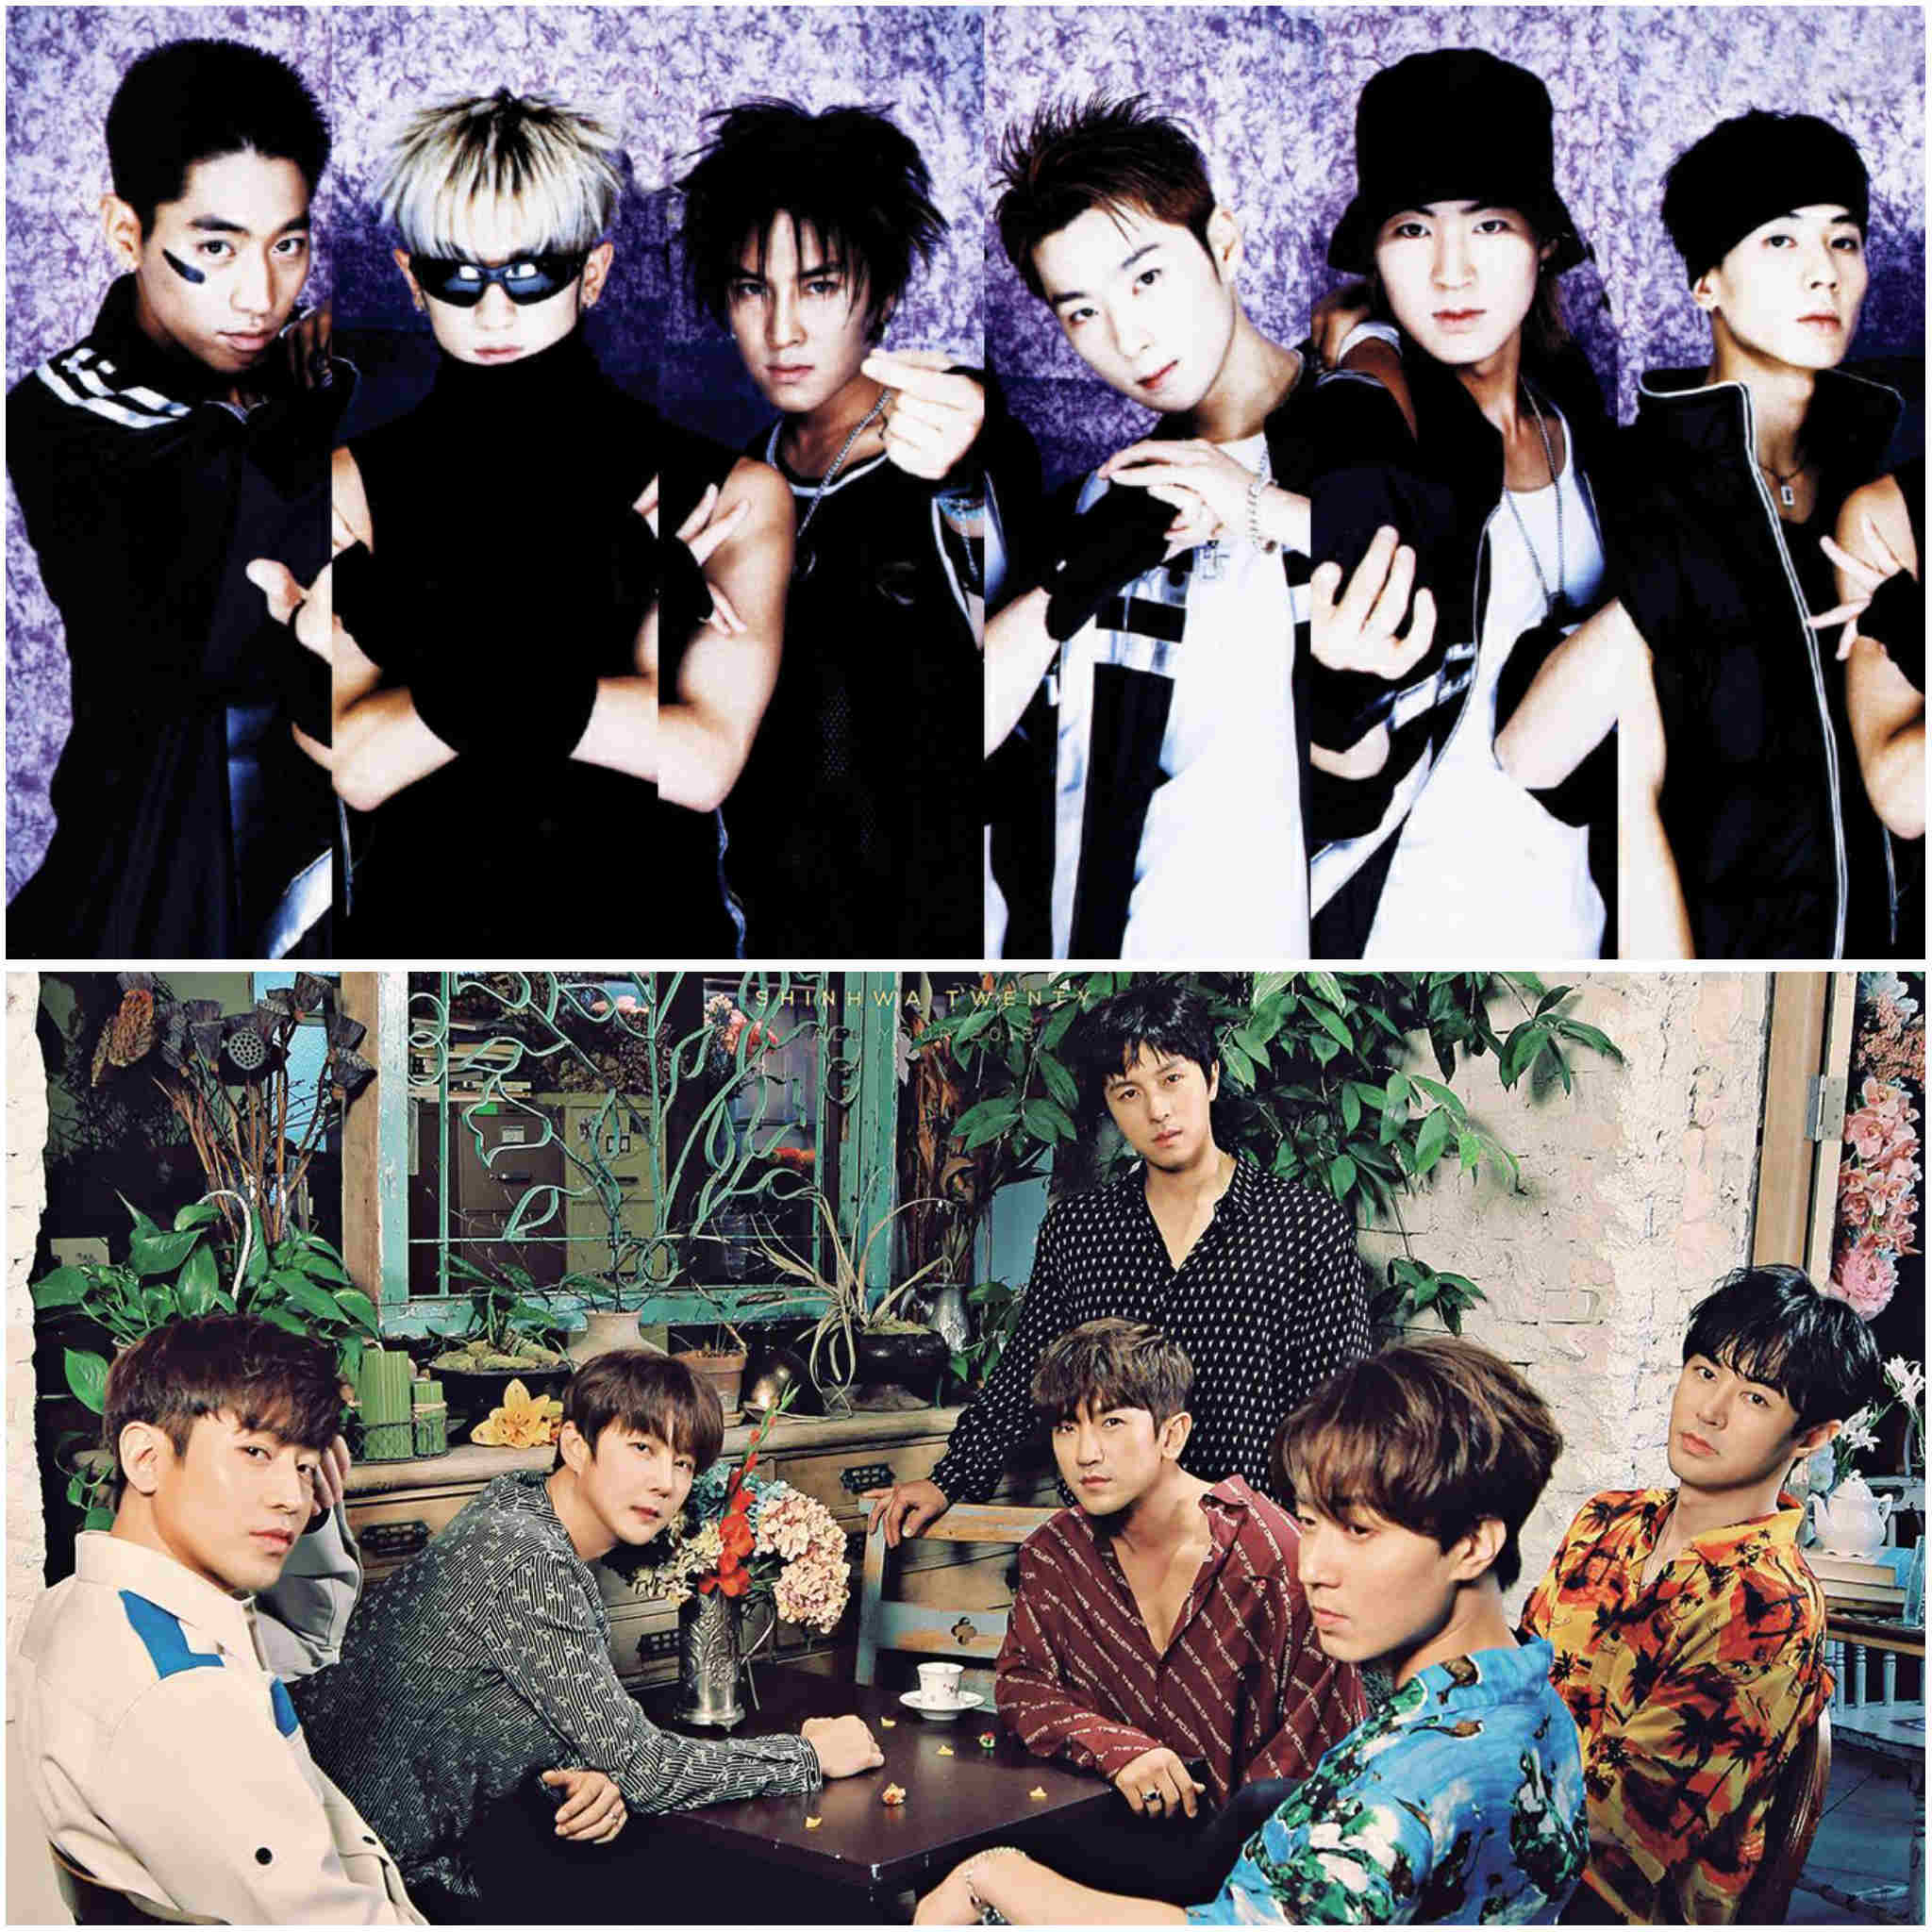 2nd generation K-pop groups - Shinhwa